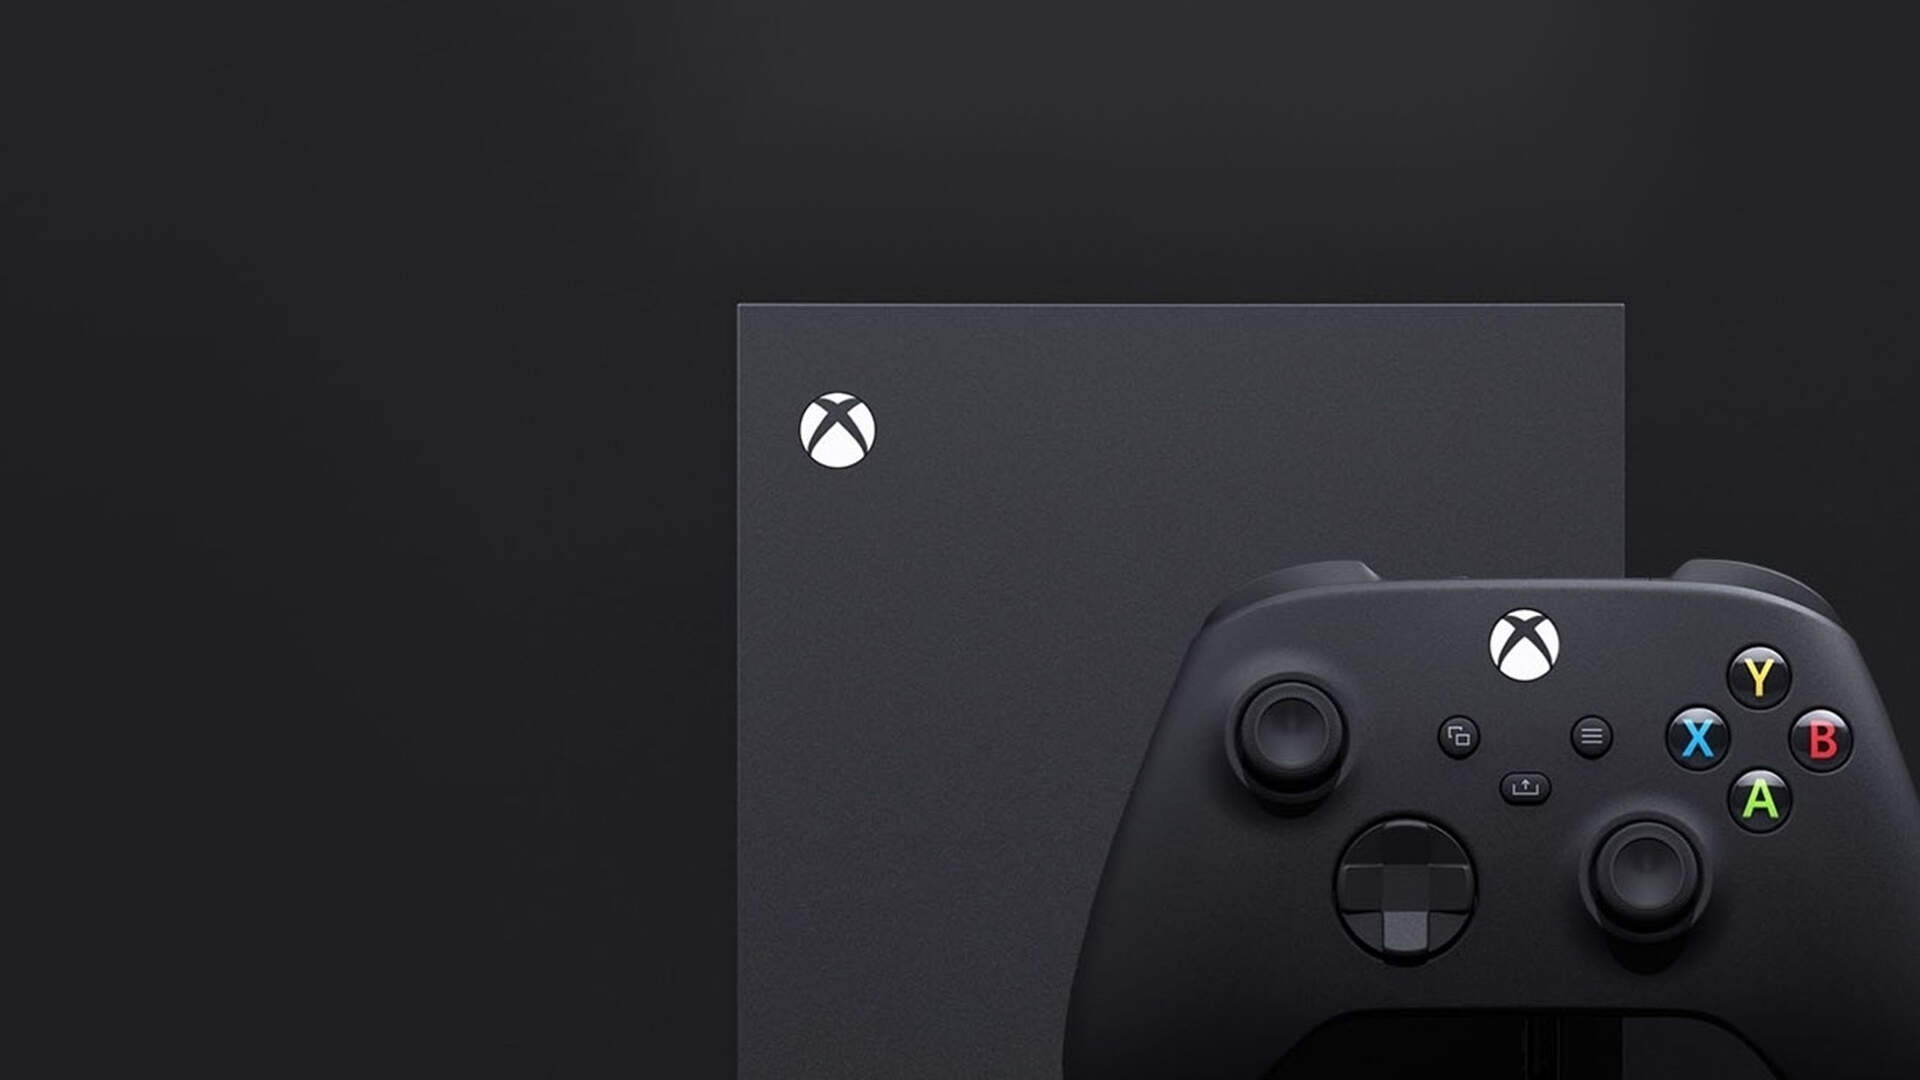 Gabe Newell, Currently Hunkered Down in New Zealand, Gives Next-Gen Edge to Xbox